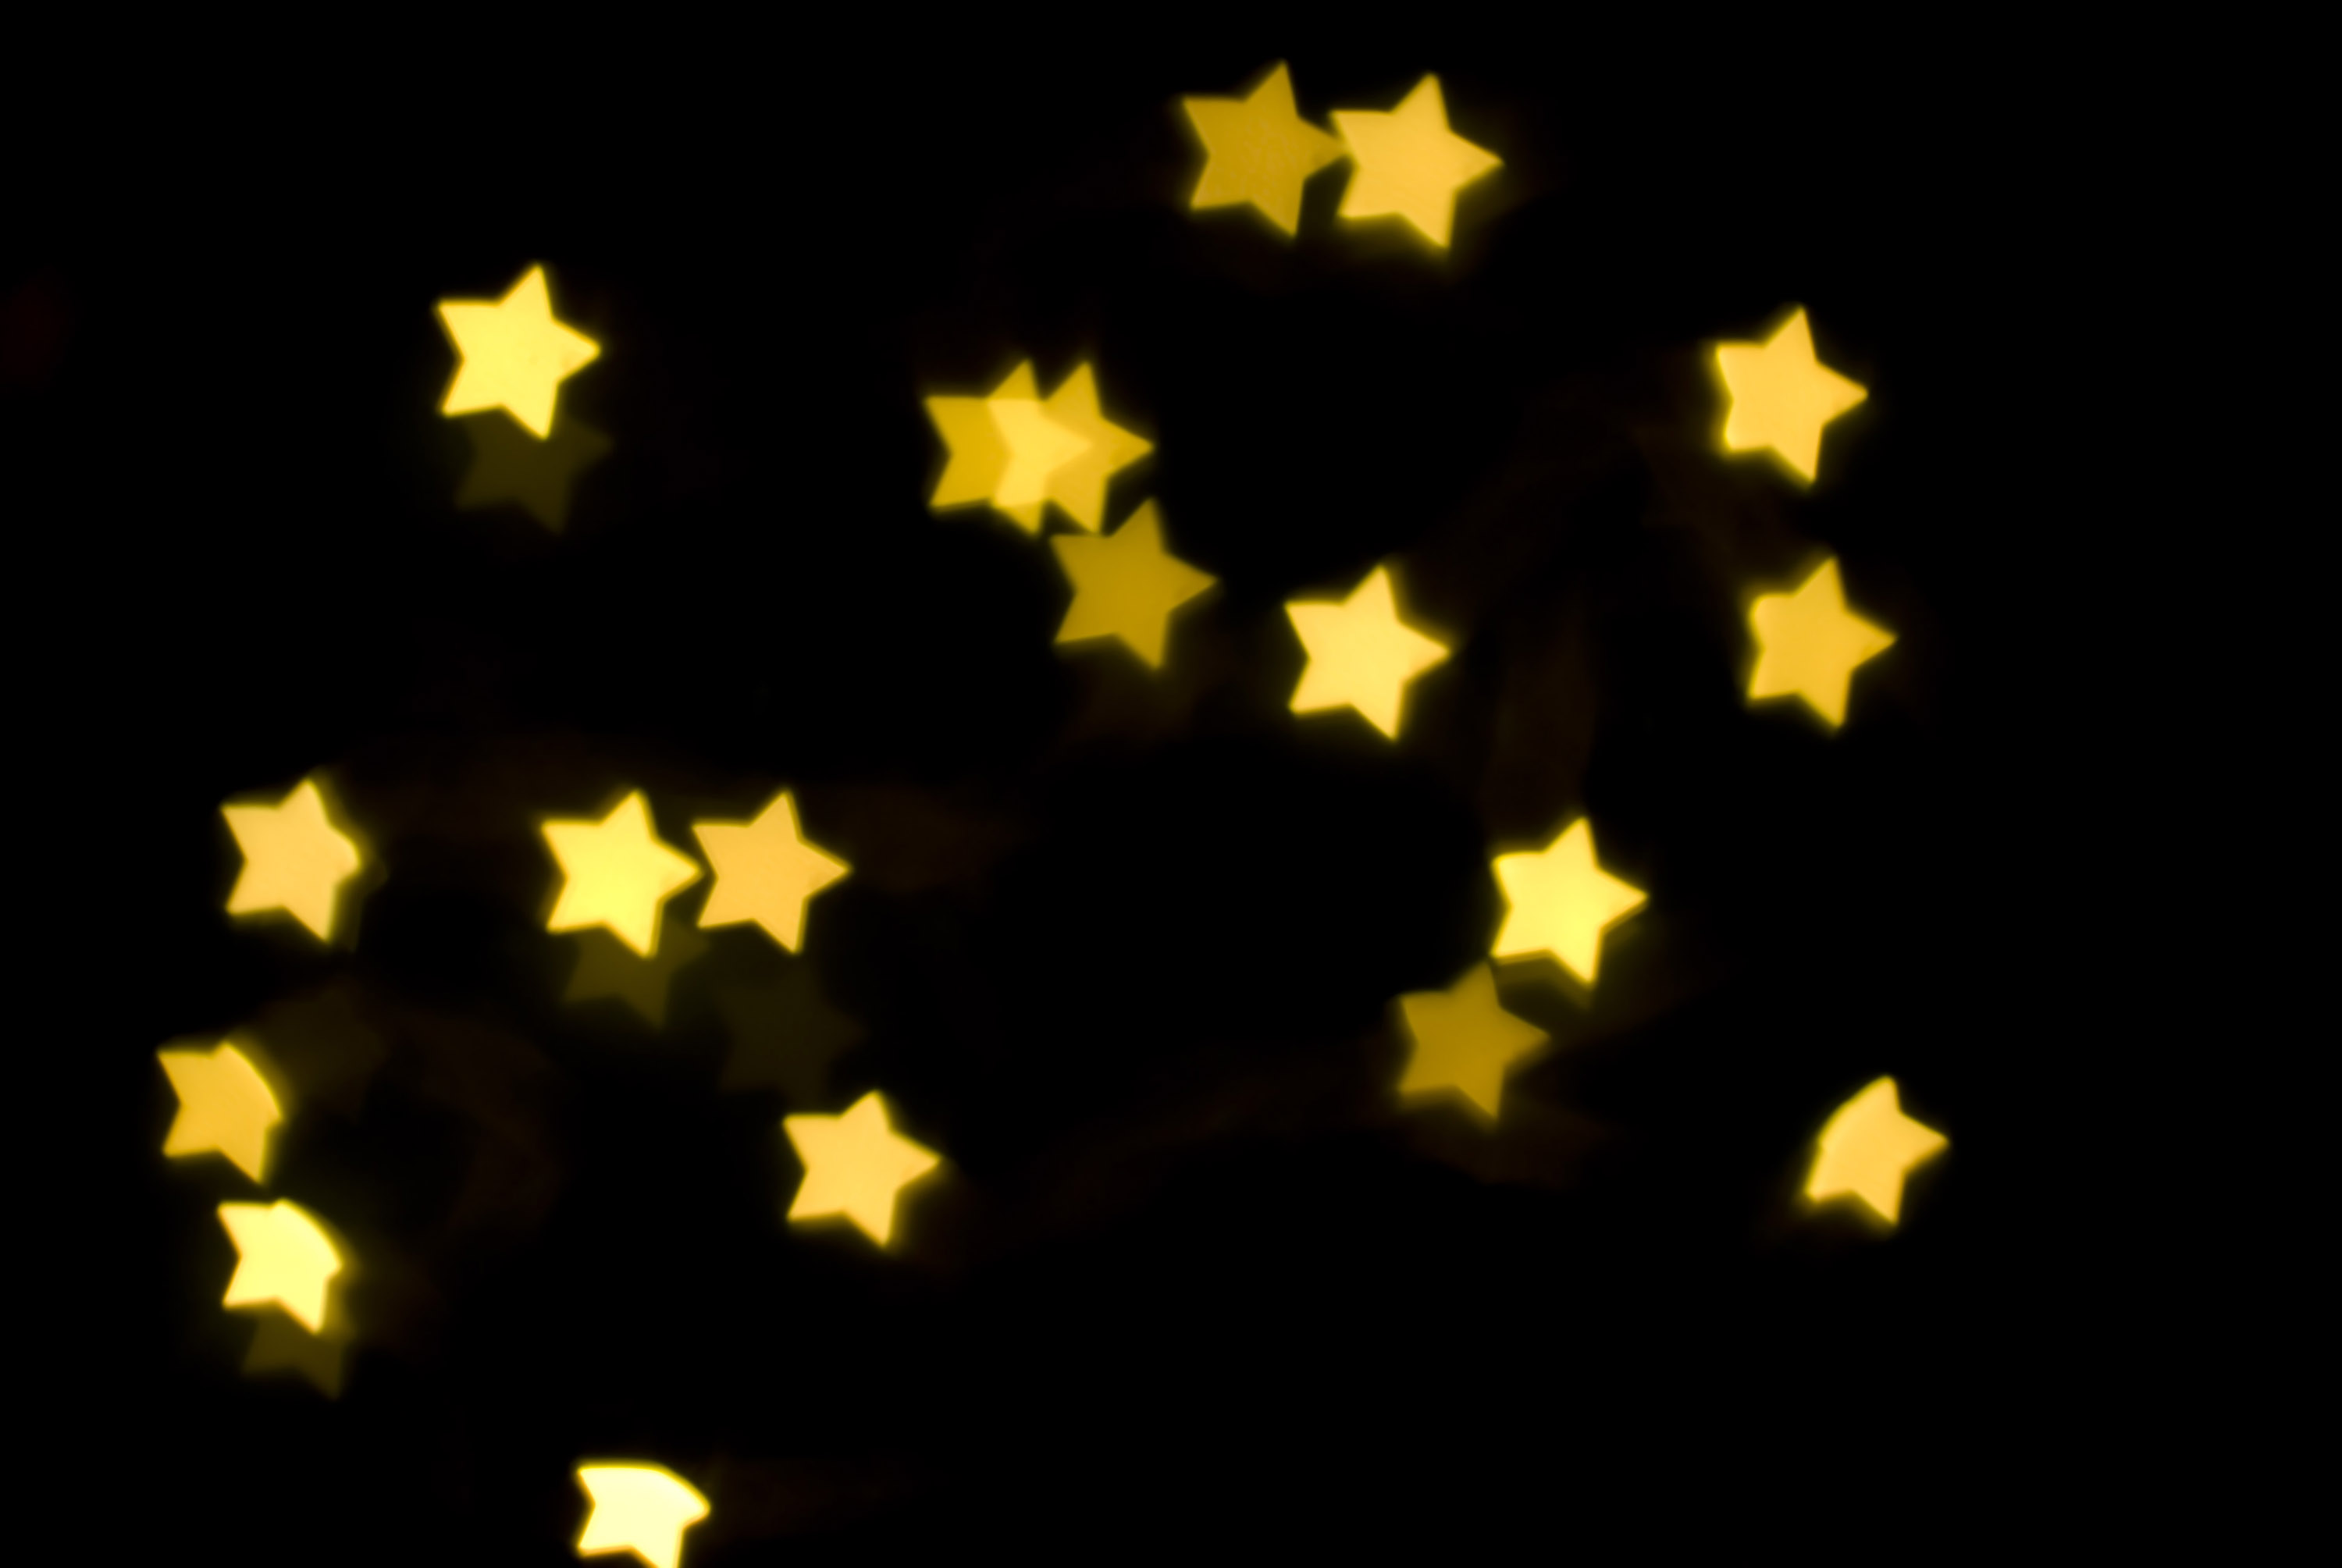 background of glowing yellow star shapes